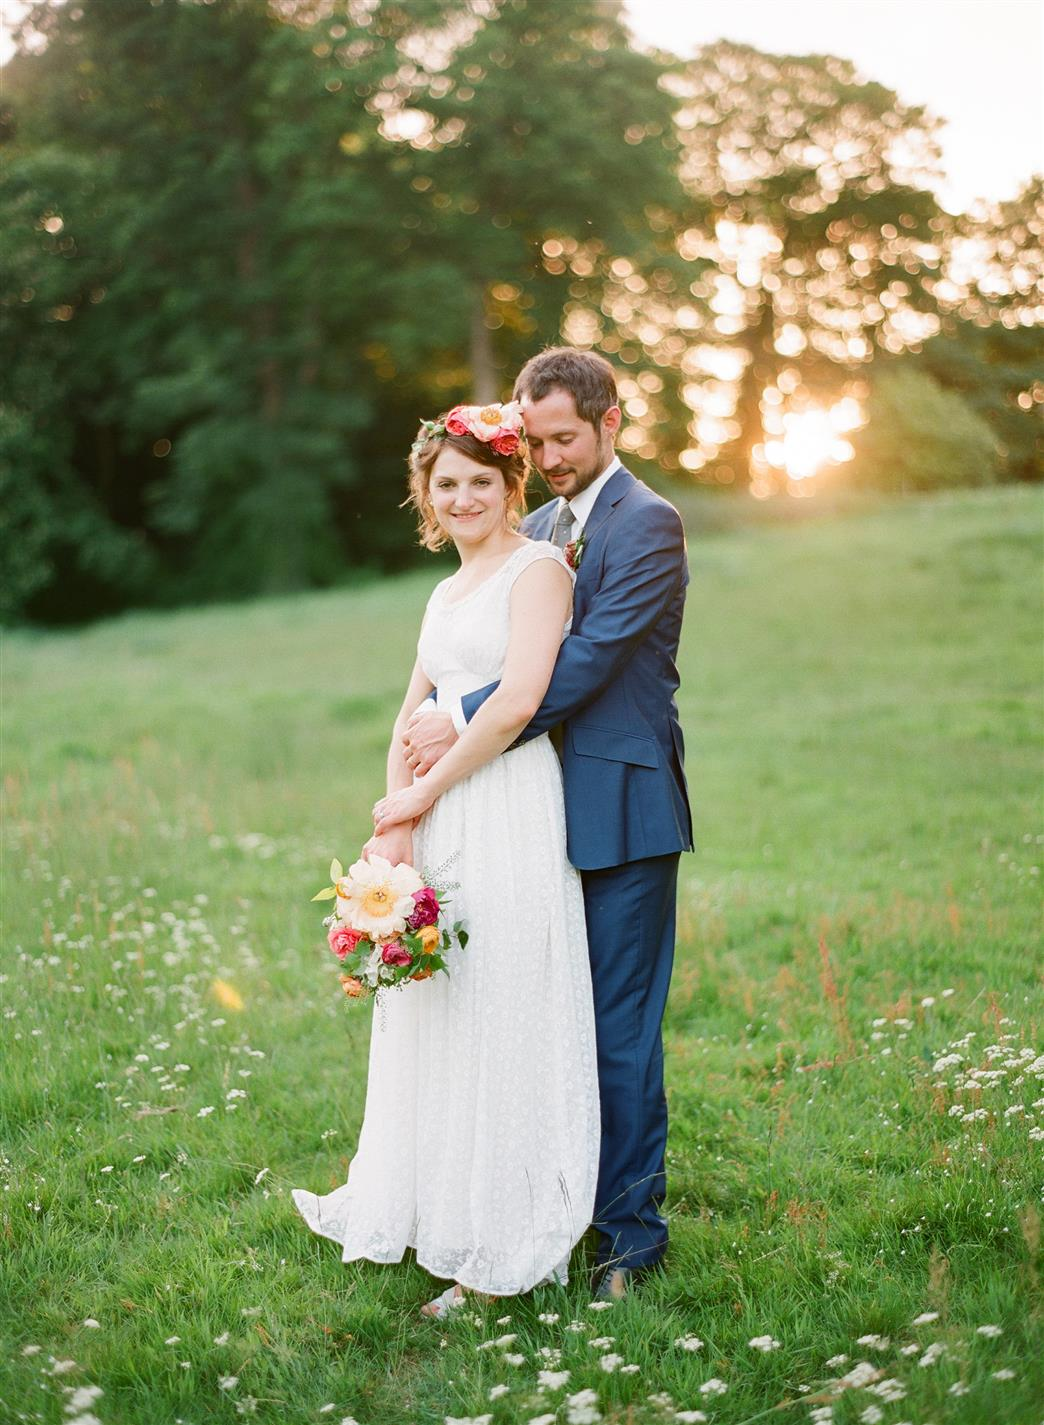 A 1940s Wedding Dress for a Sweet Early Summer Wedding from Taylor & Porter Photography